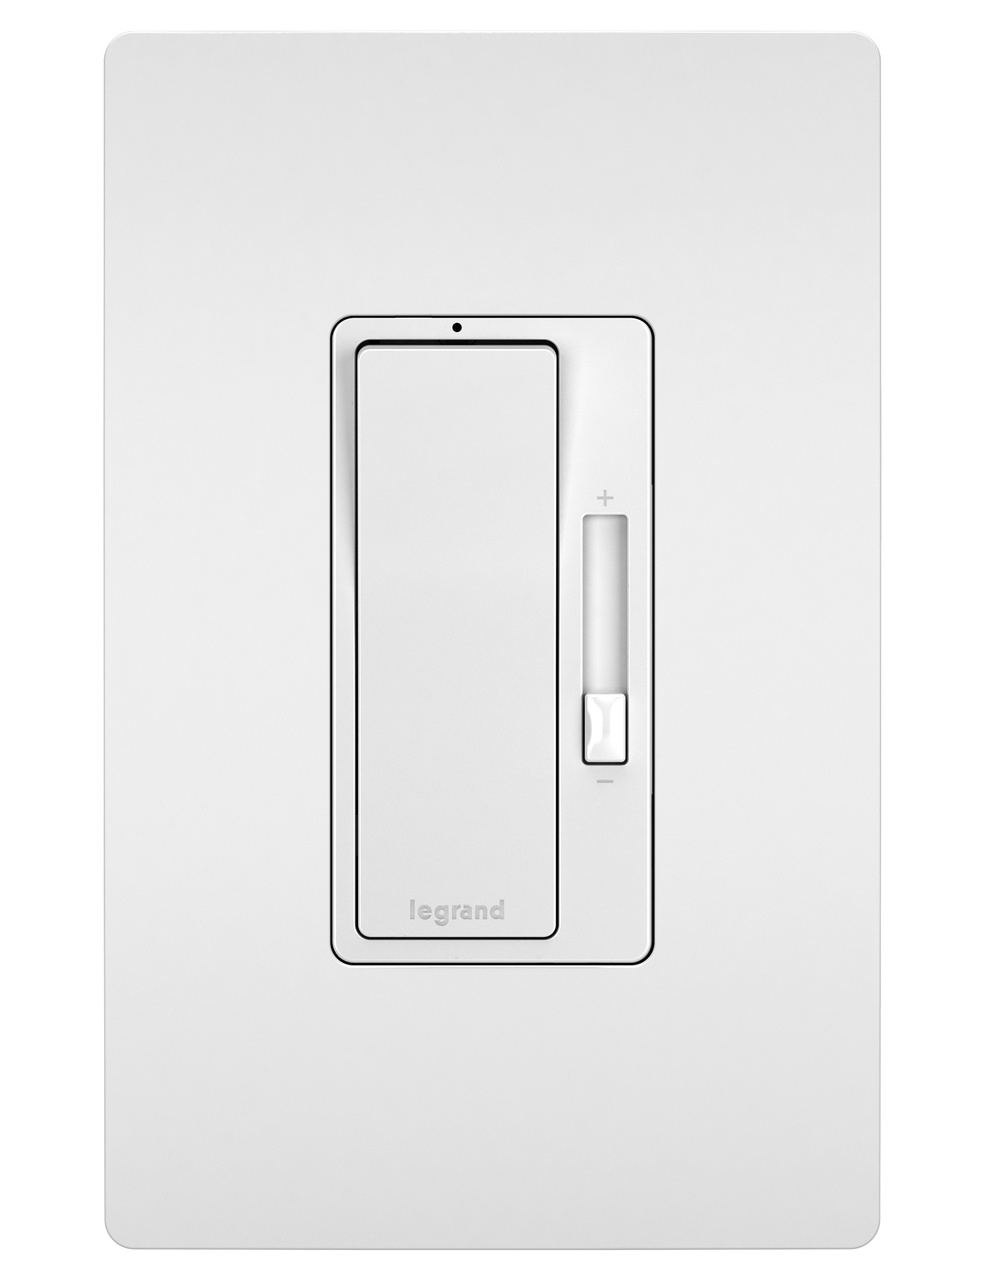 dimmers | by Legrand